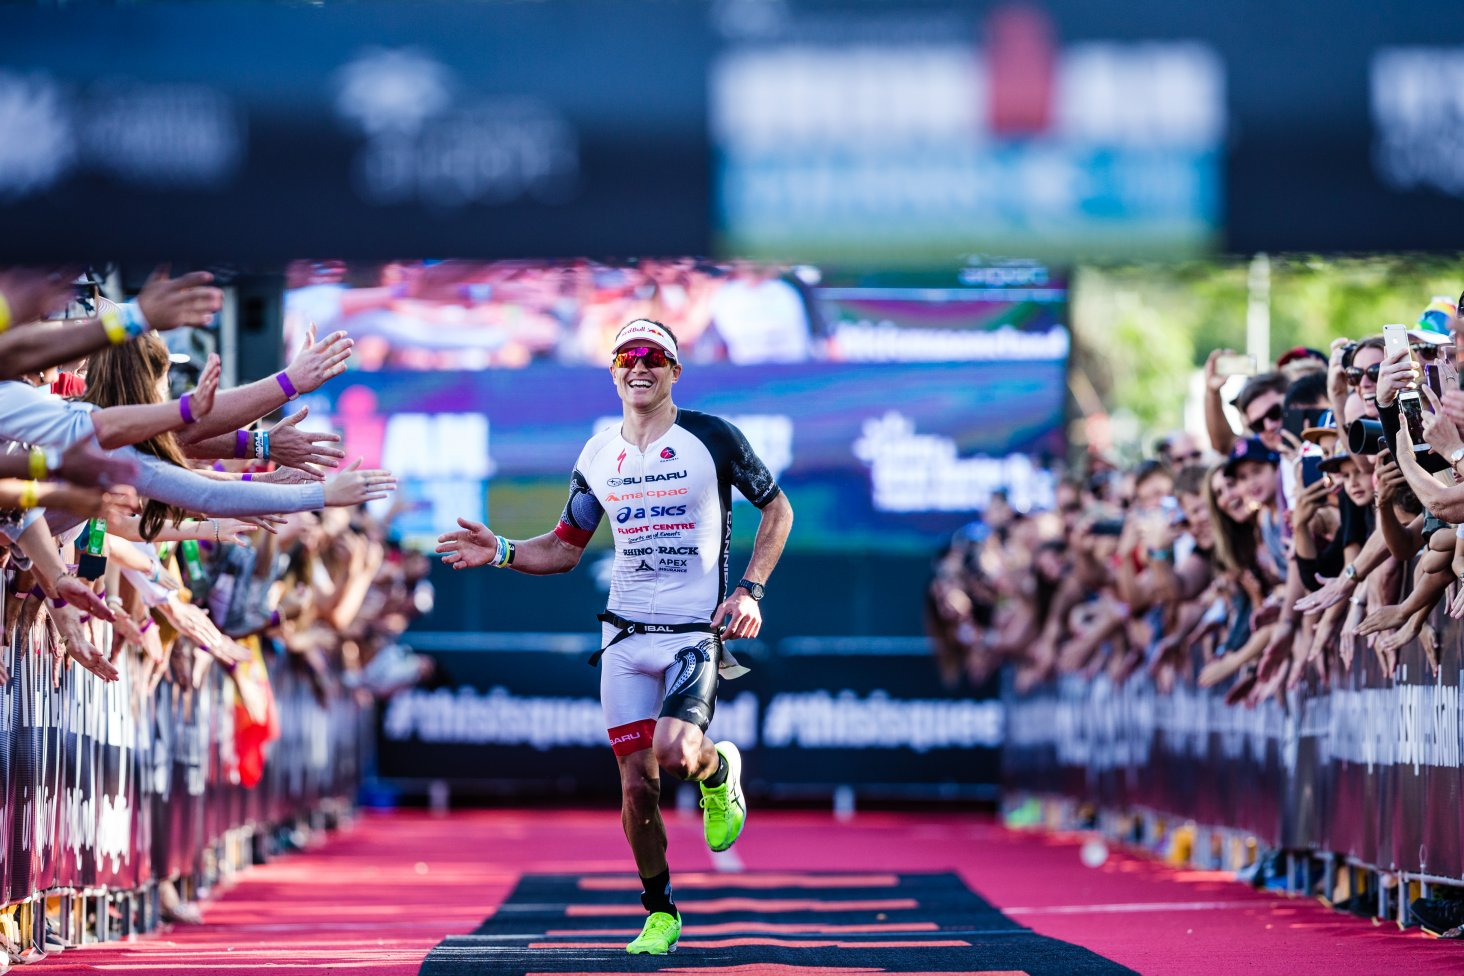 Braden Currie on the home straight at Ironman Cairns 2018. Photo Credit Korupt Vision.